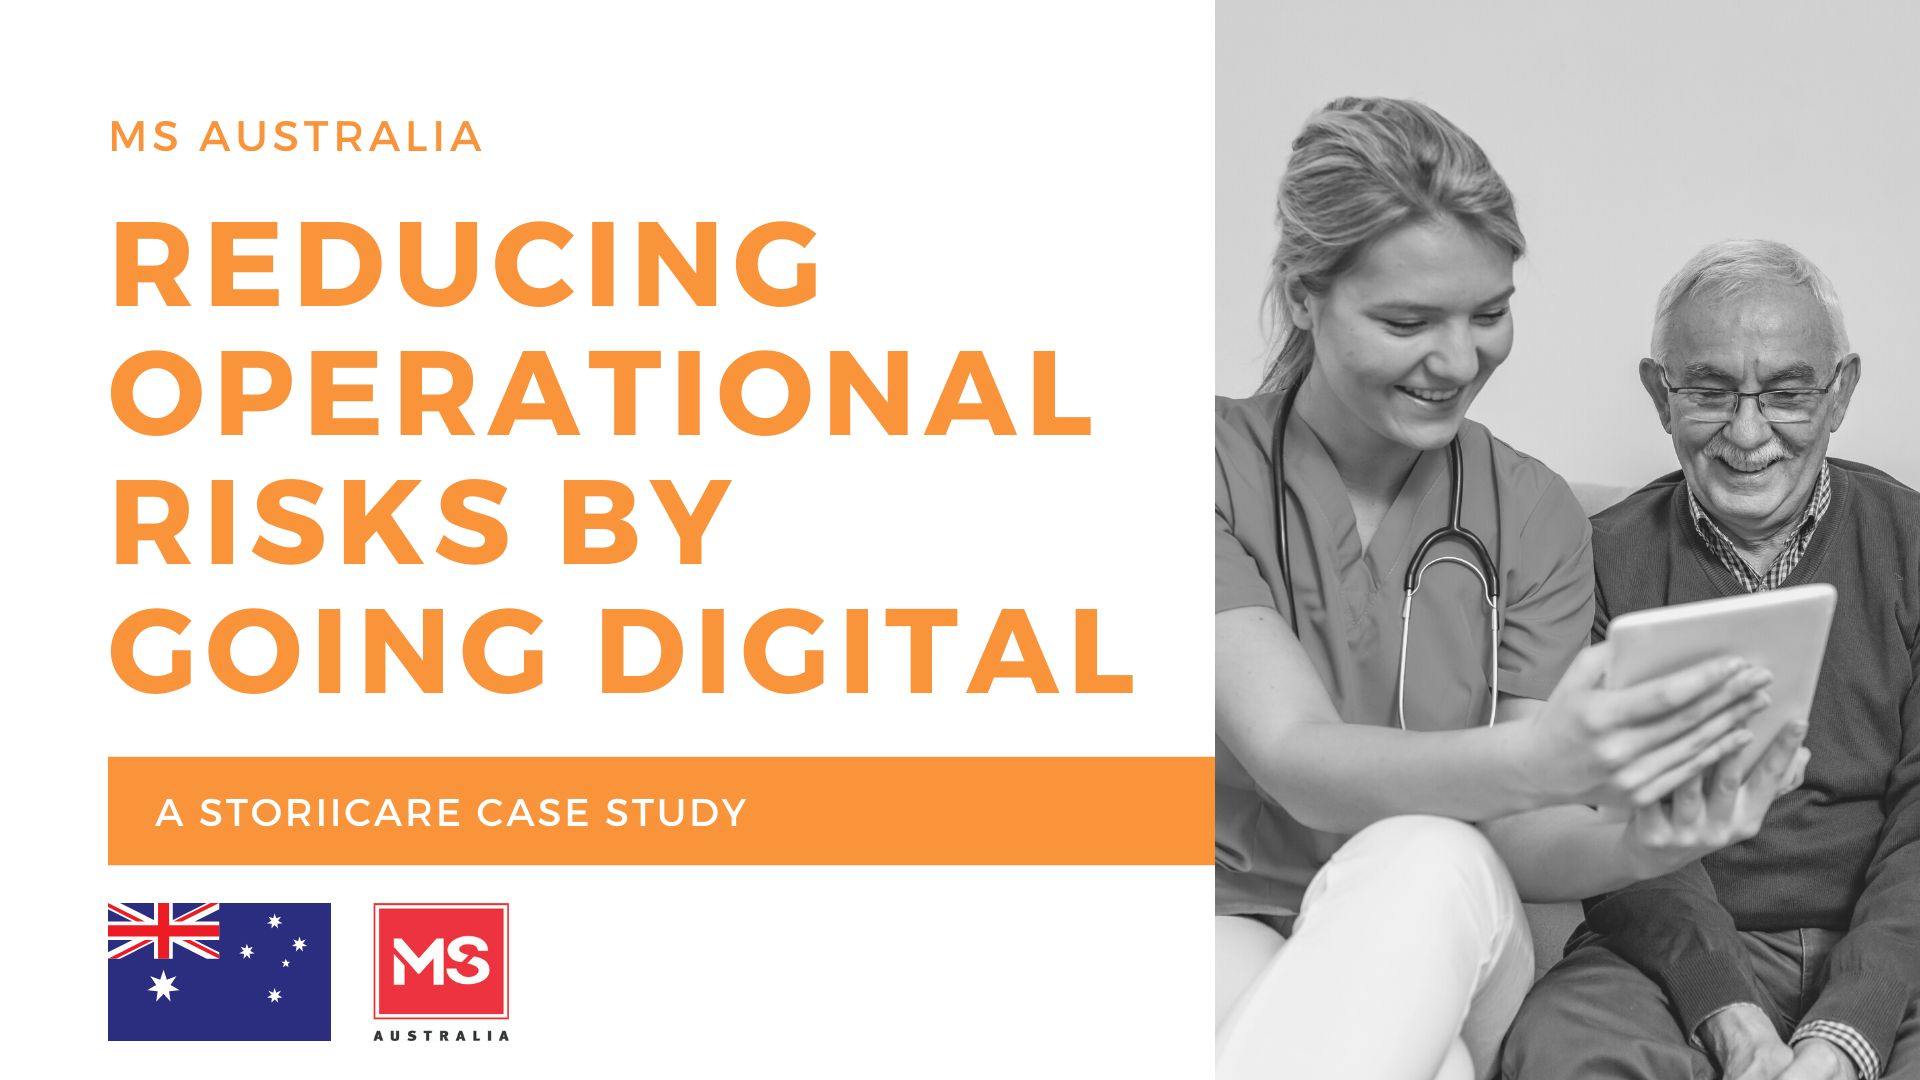 Reducing Operational Risks by Going Digital